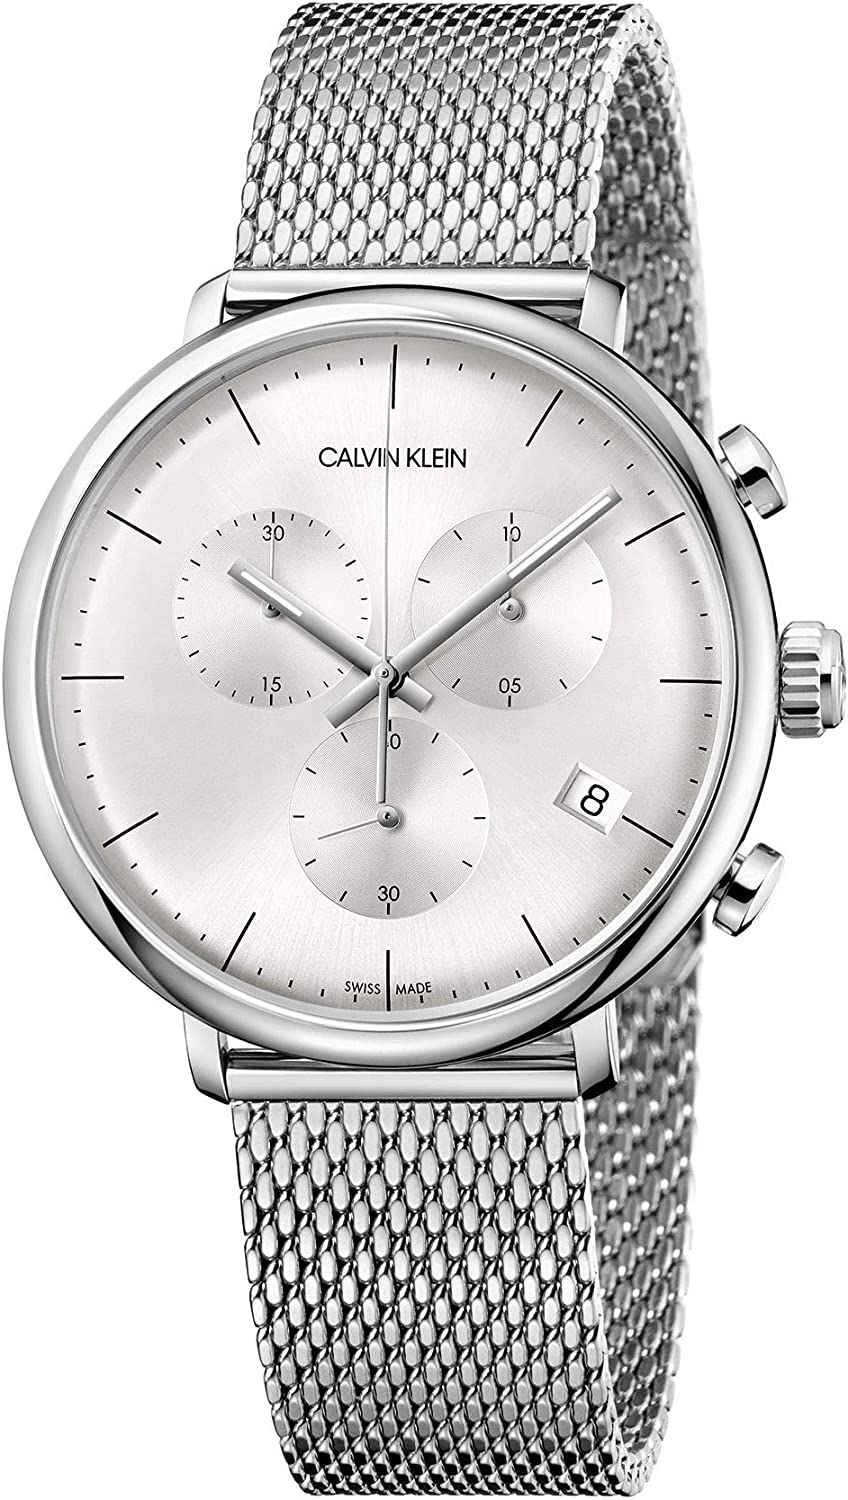 Calvin Klein Unisex Adult Chronograph security Watch with Quartz Stainles 70% OFF Outlet